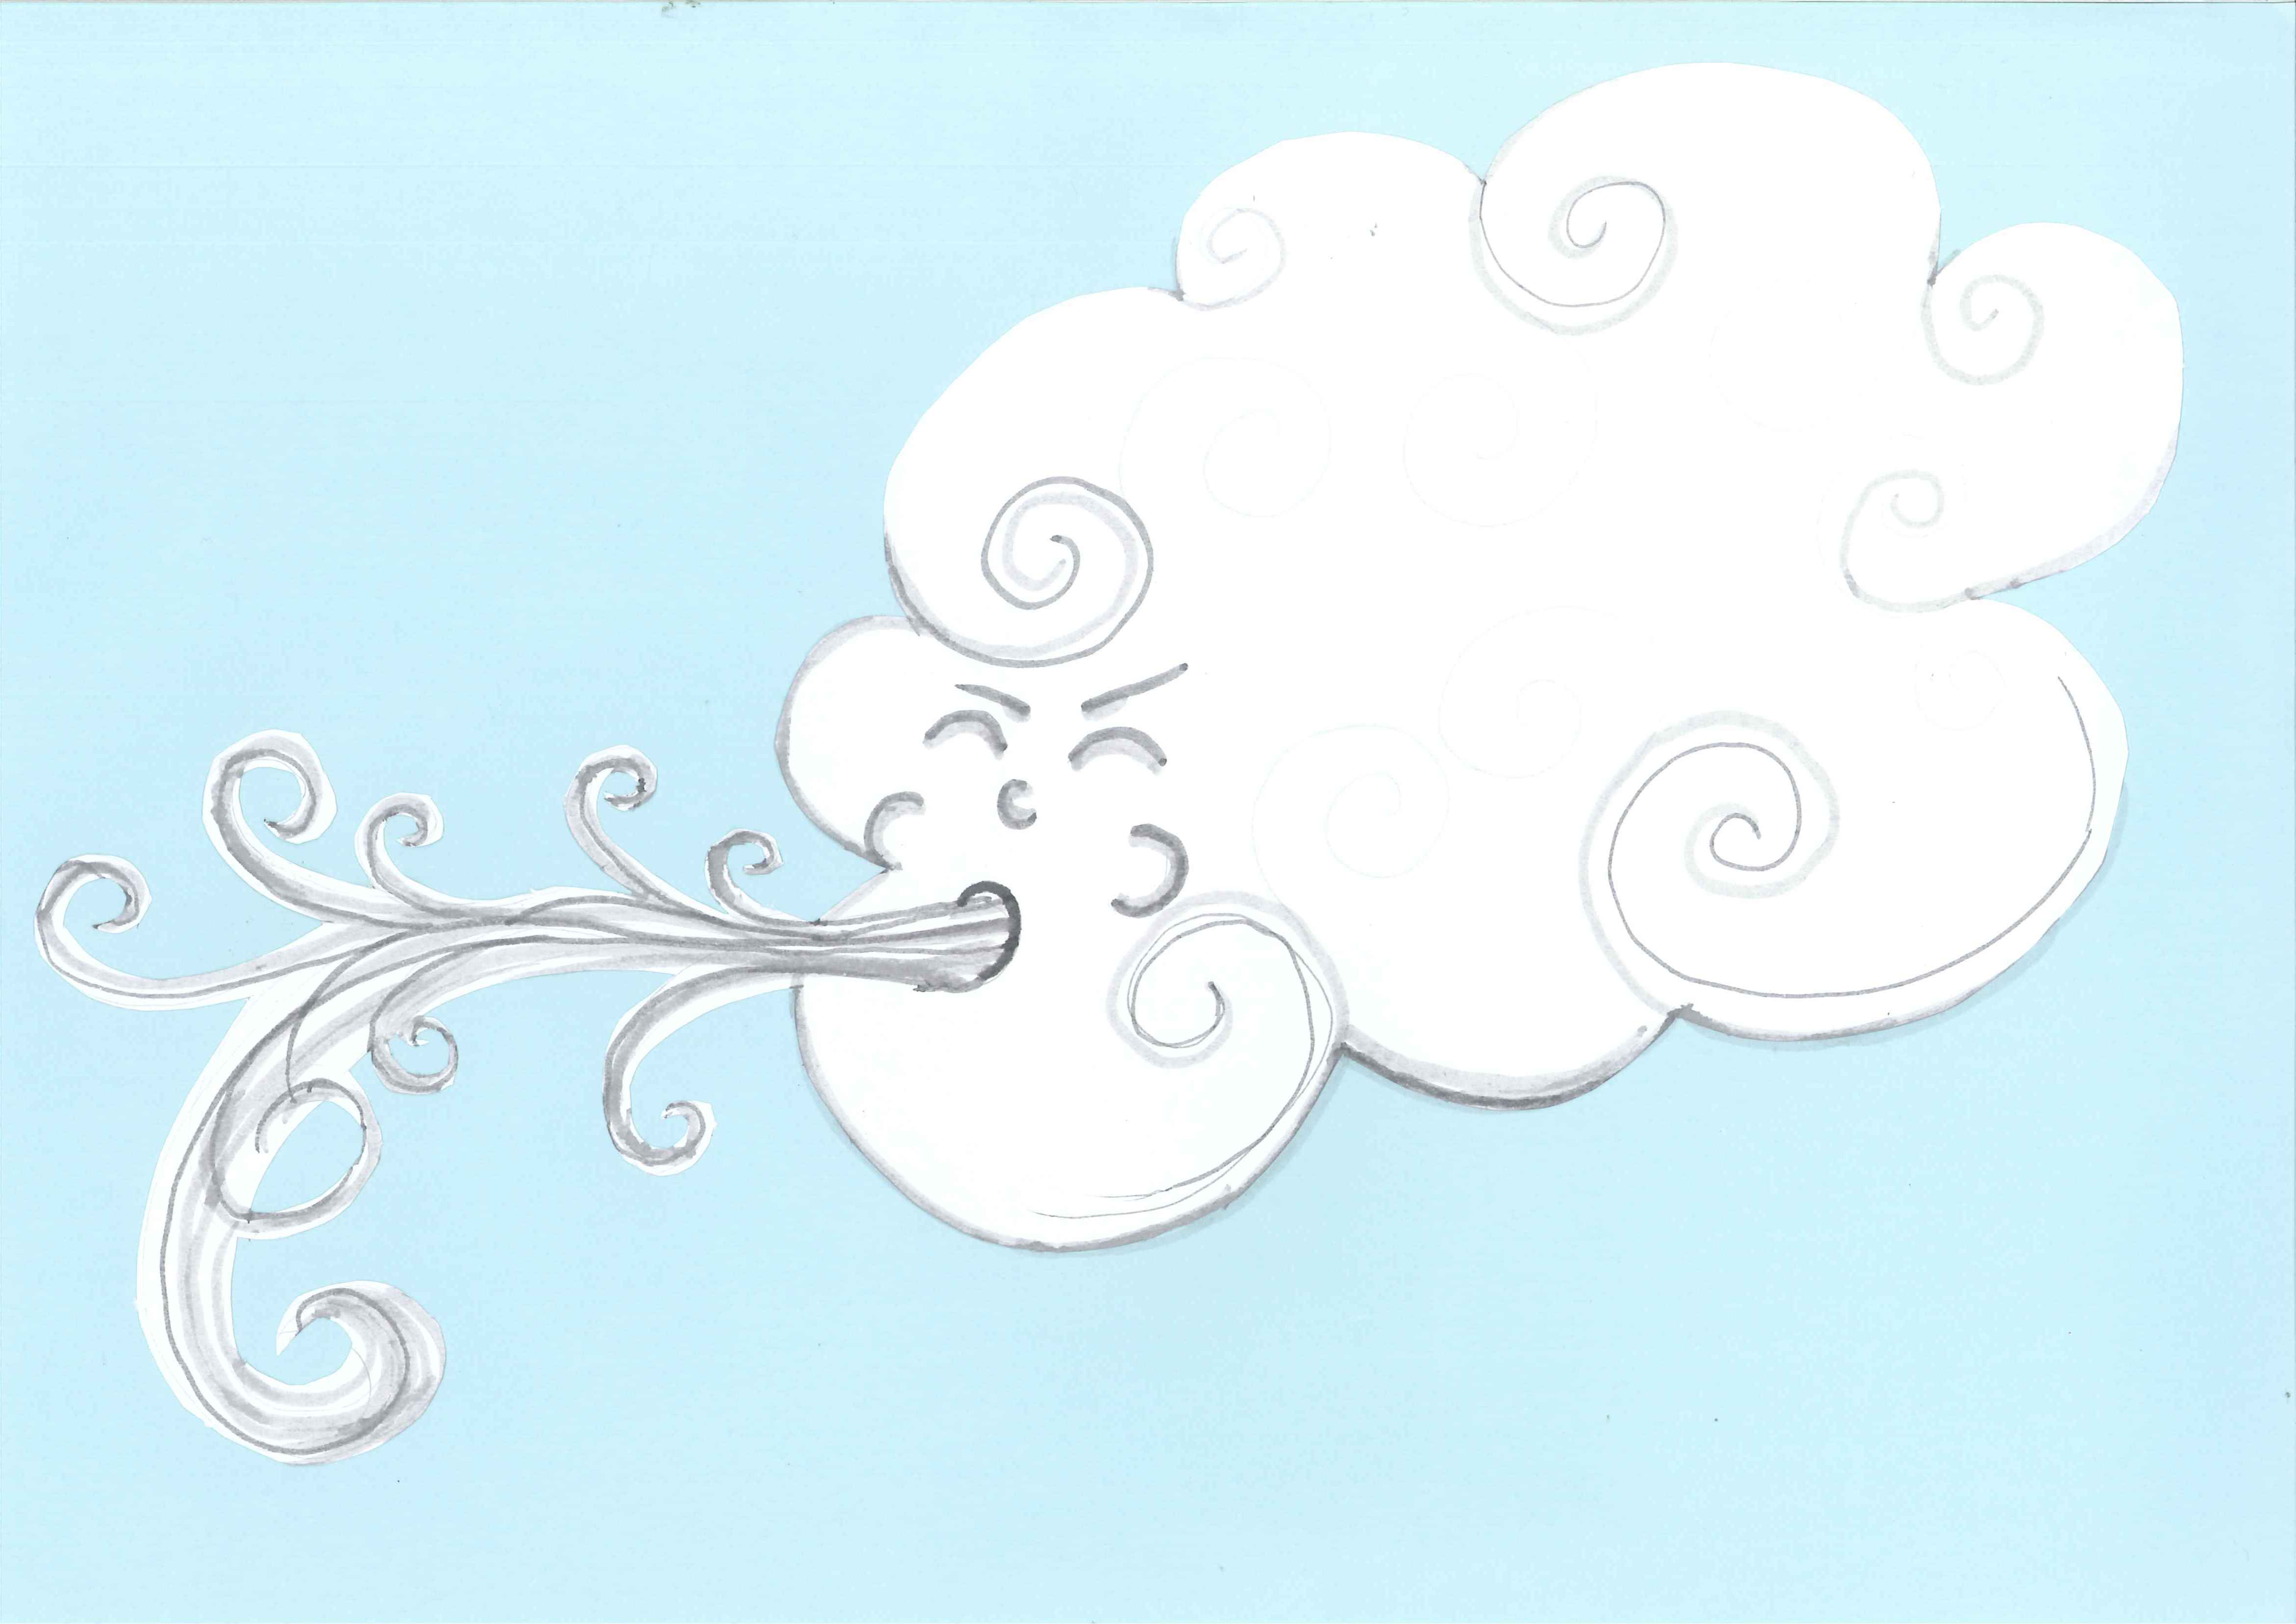 Wind clipart foggy weather Clipartion Cloudy Clipart And com